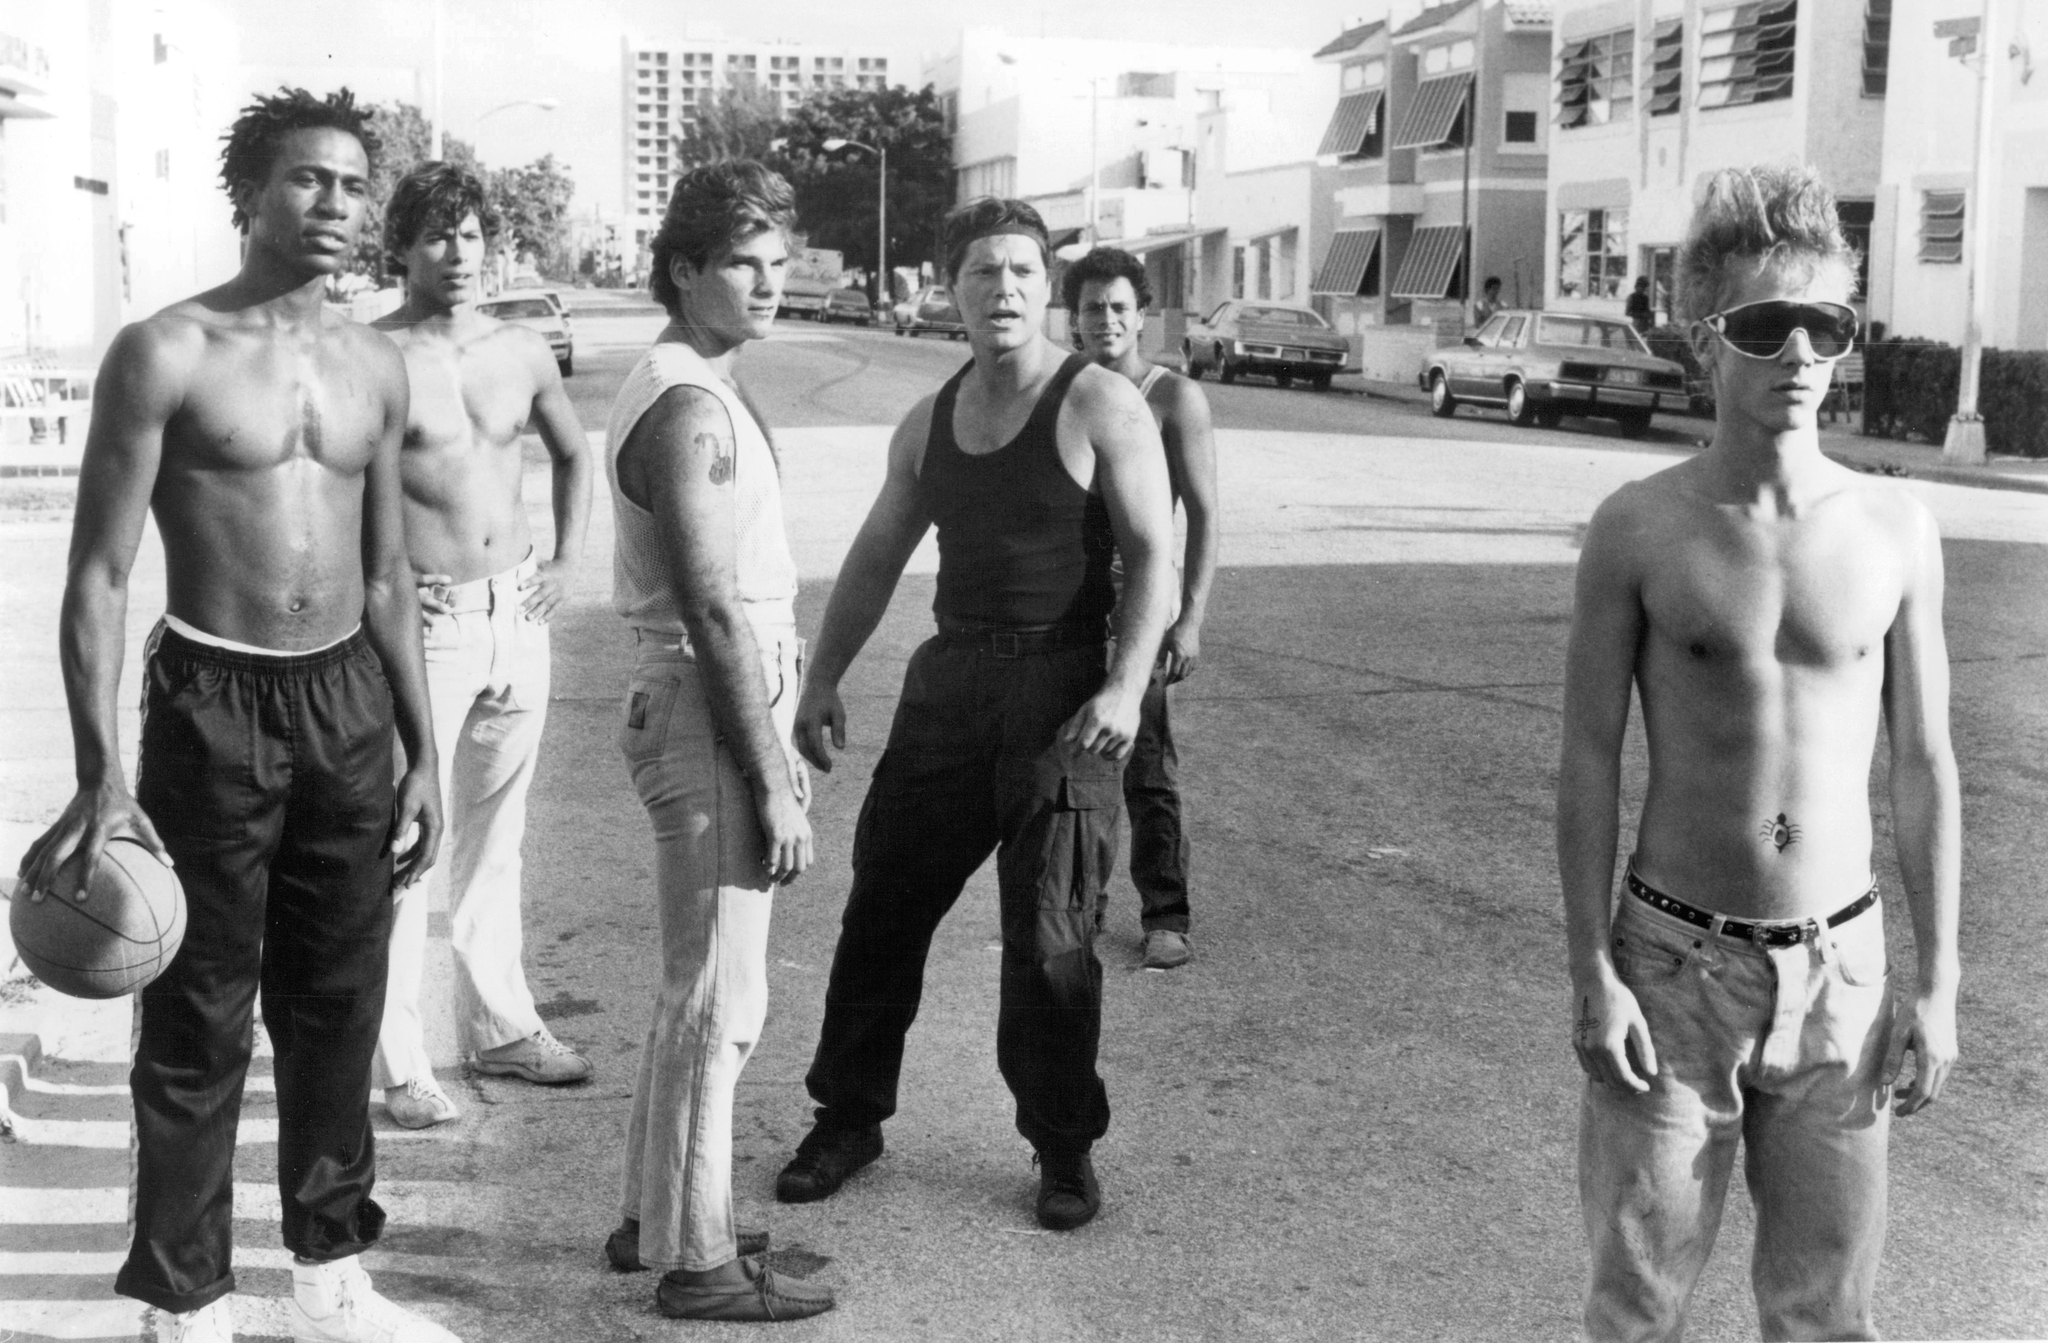 Stephen Lang, Michael Carmine, Leon, John Cameron Mitchell, Danny Quinn, and Al Shannon in Band of the Hand (1986)